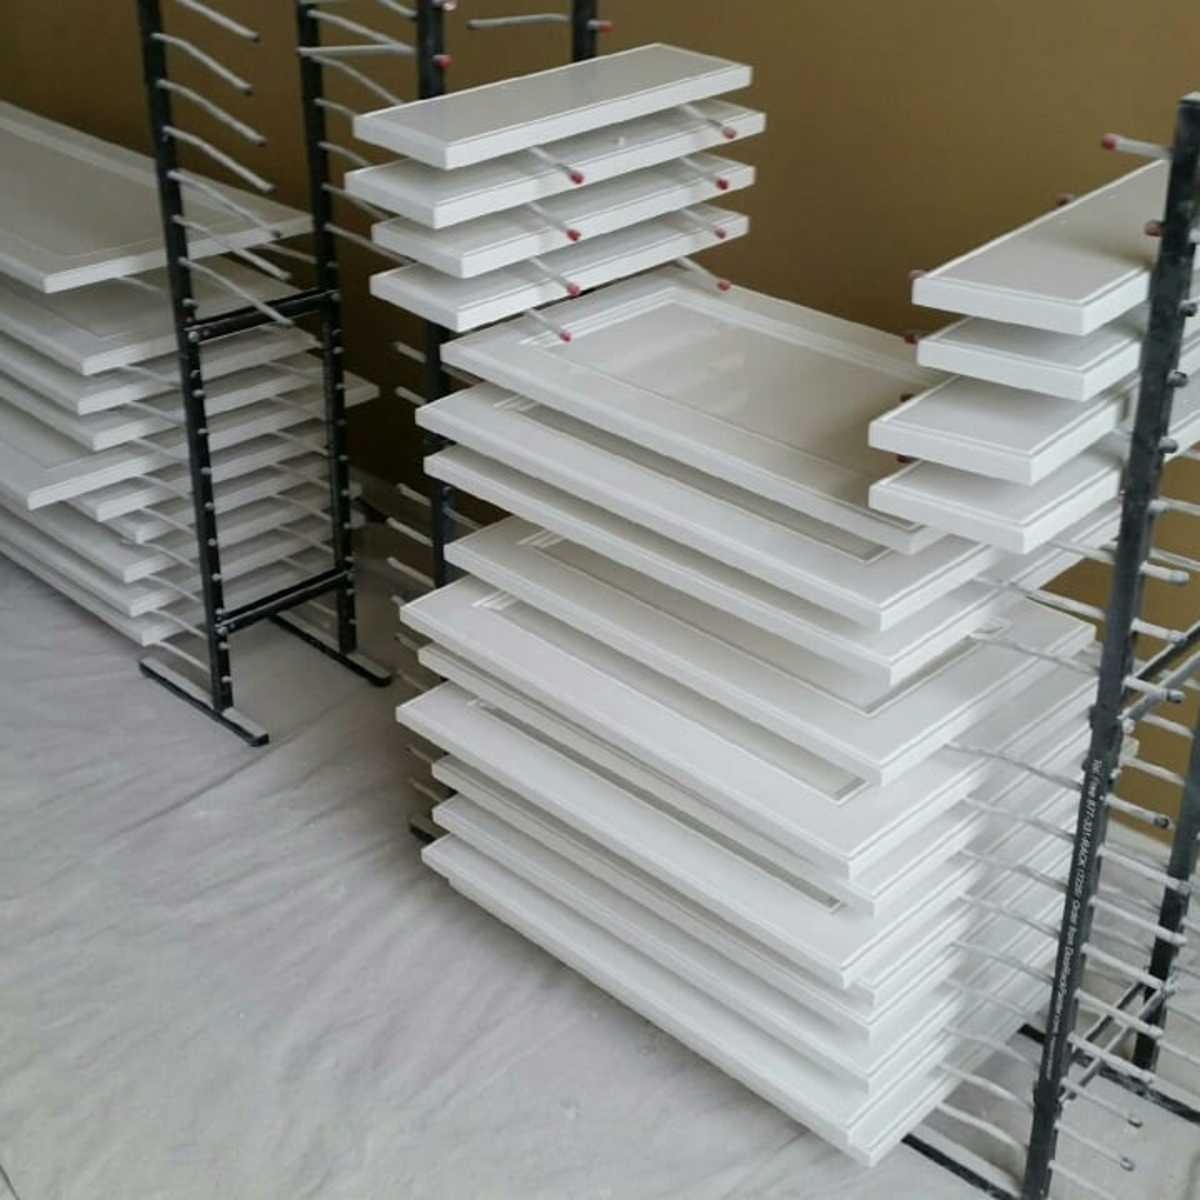 Freshly painted cabinet doors on my drying racks. The special design allows both sides to be painted at one time.